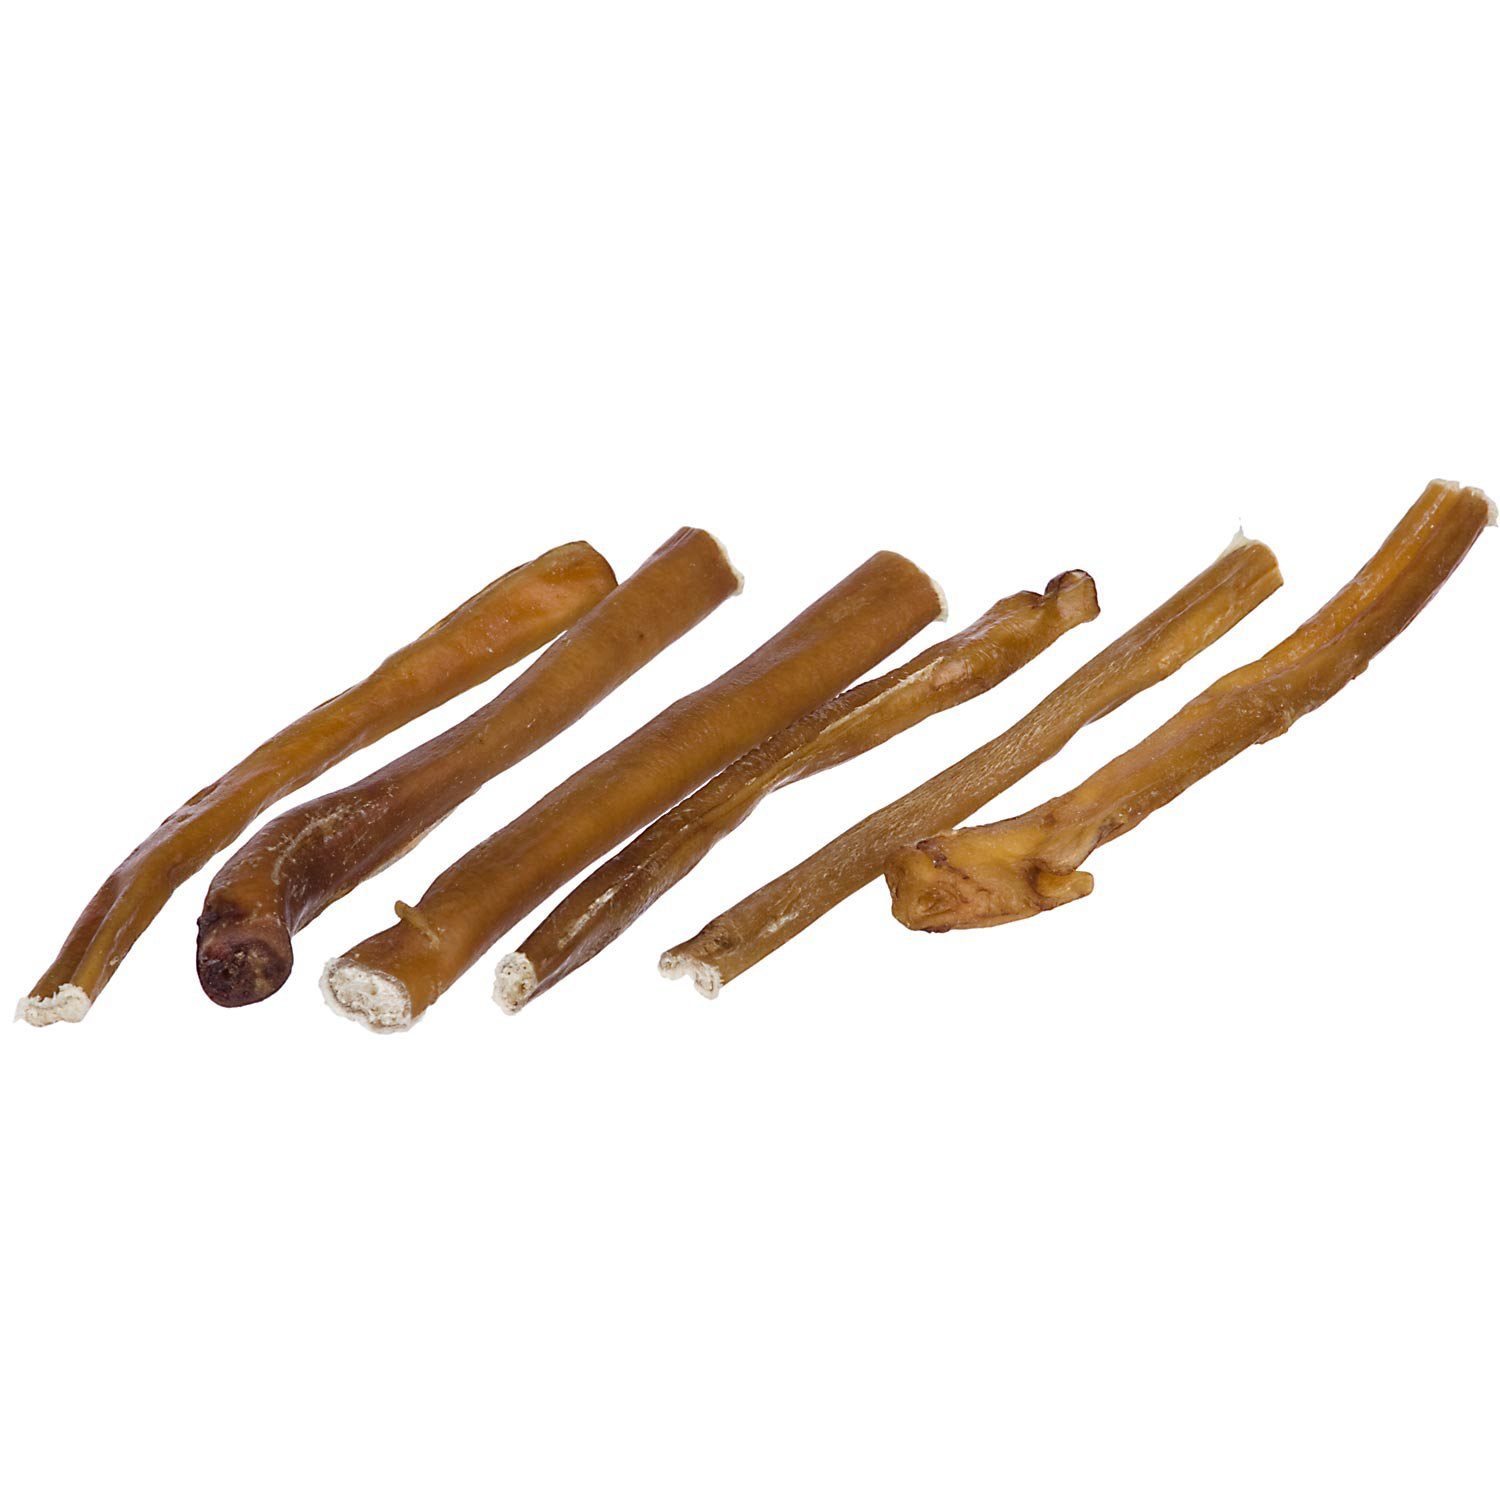 petco bully stick jr dog treats 5 length petco store. Black Bedroom Furniture Sets. Home Design Ideas